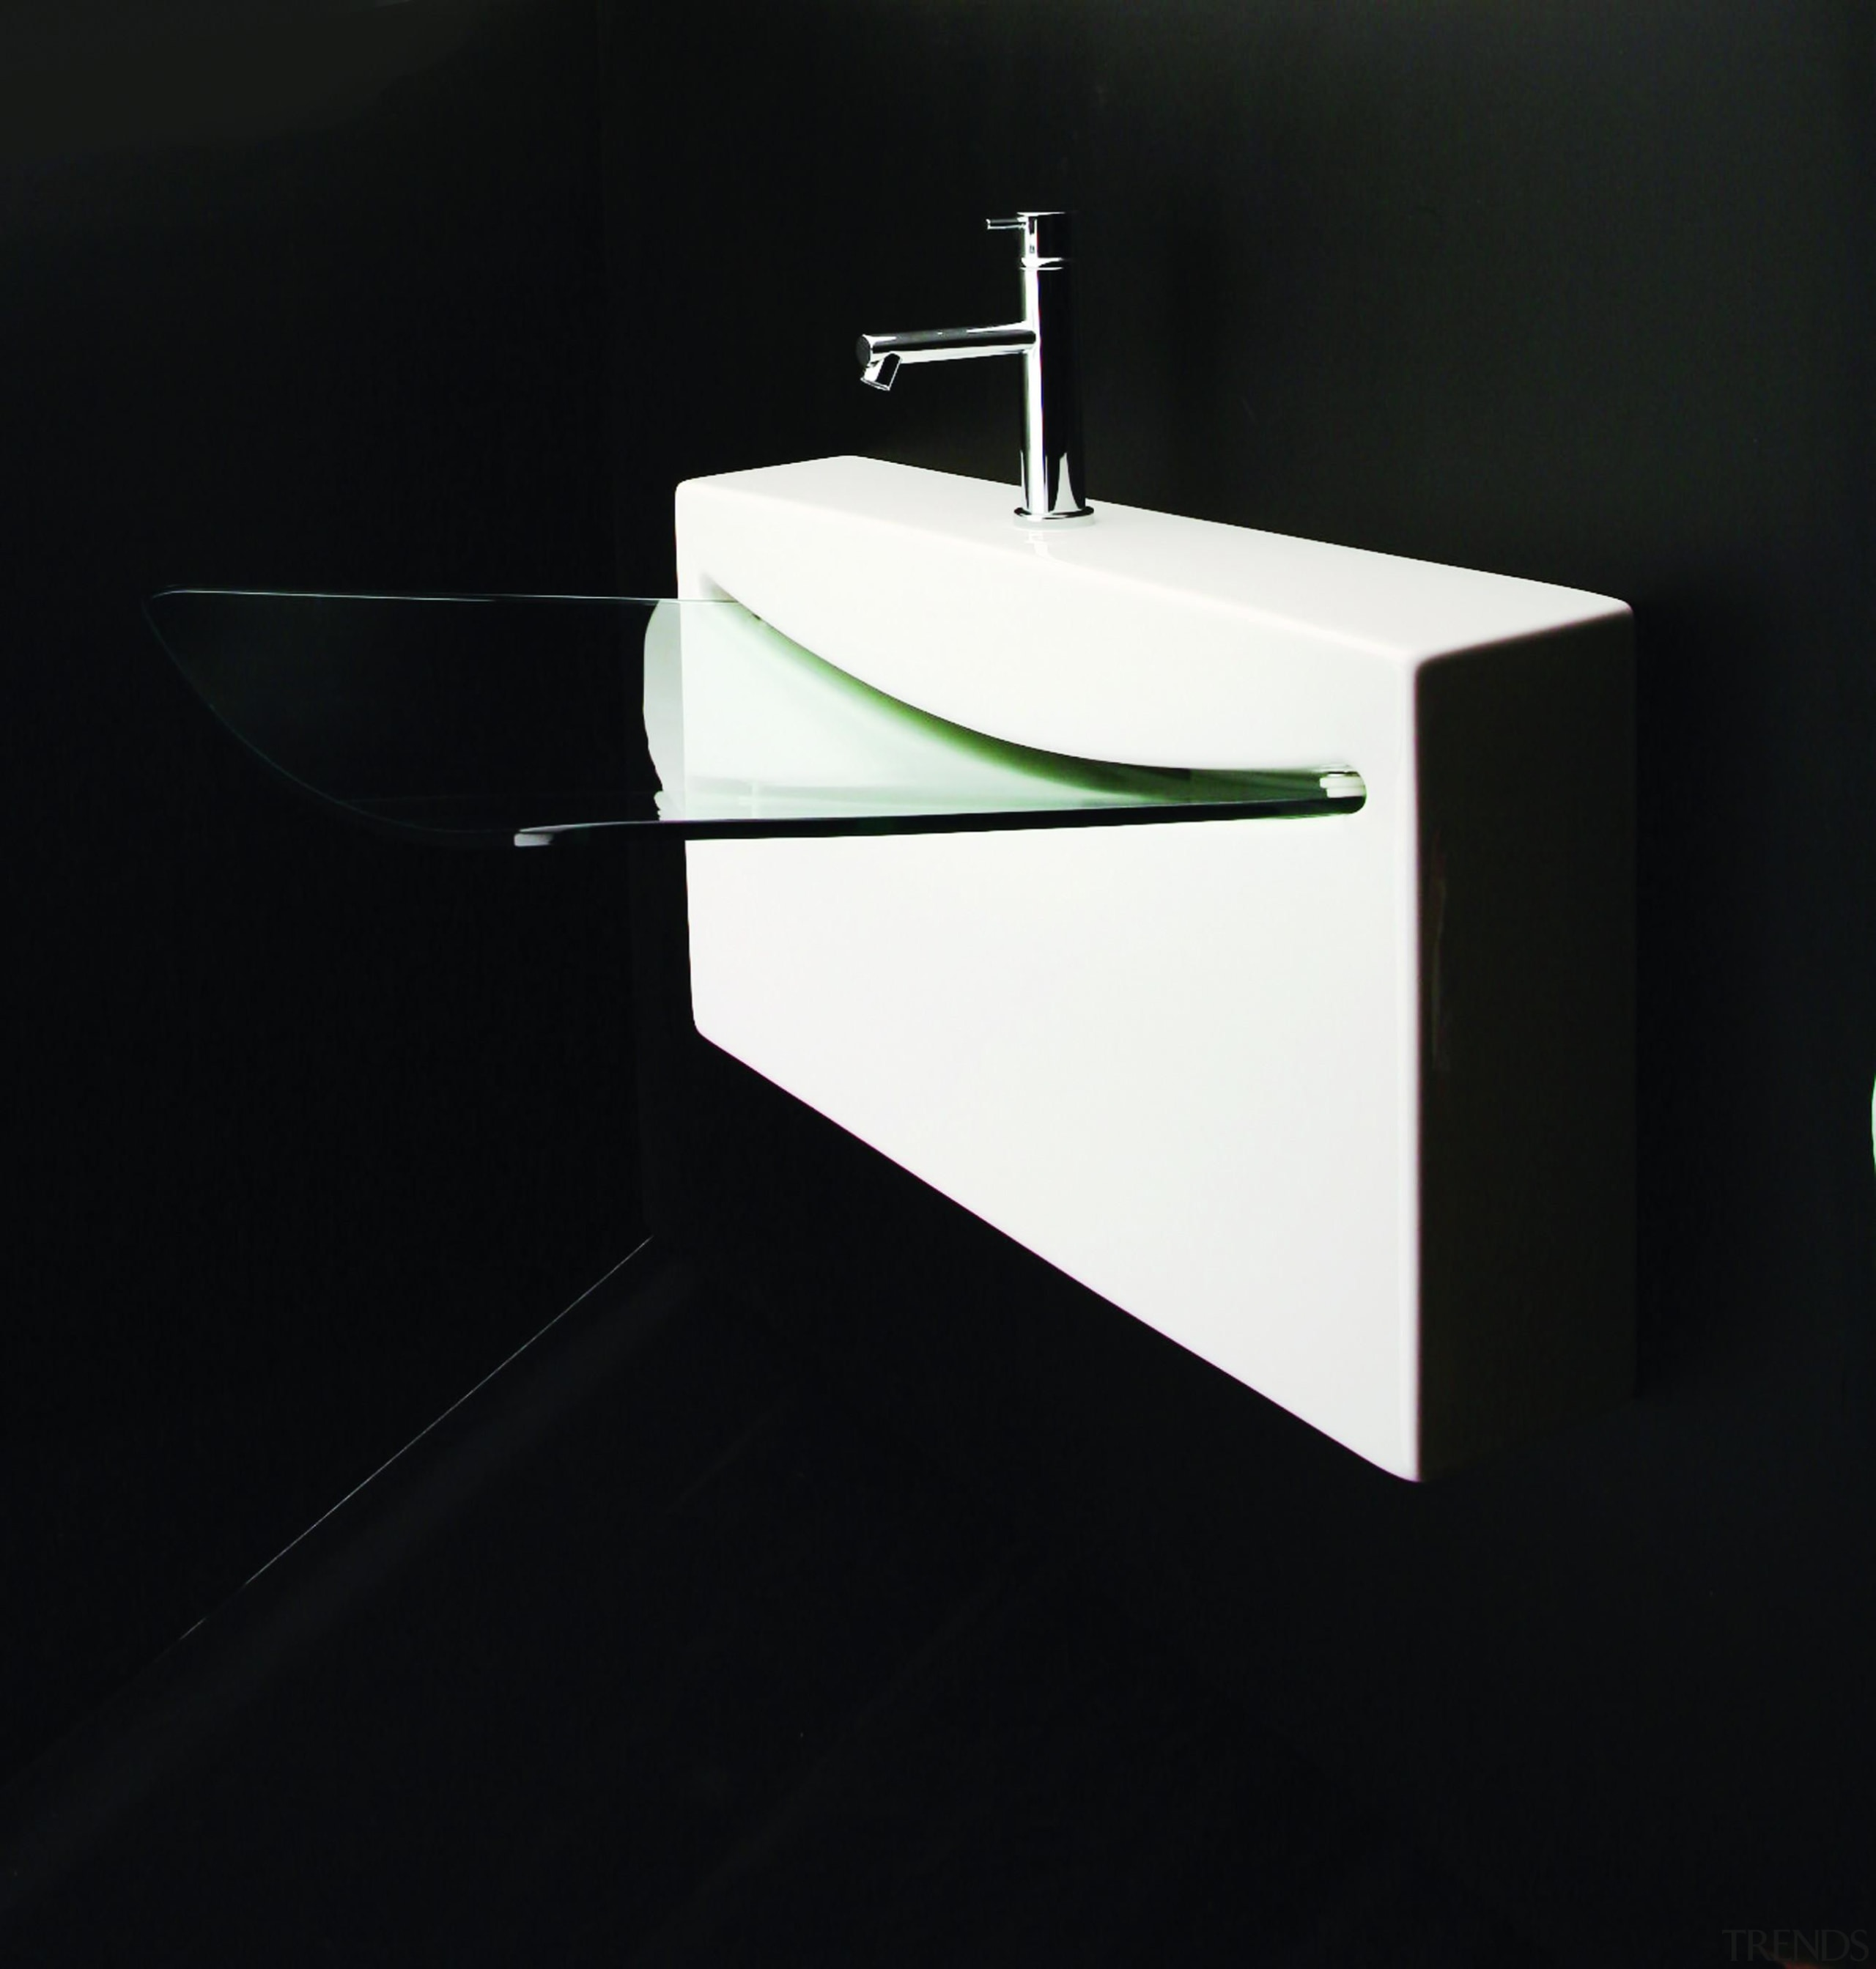 Wall-mount porcelain lavatory with one faucet hole, no angle, bathroom accessory, bathroom cabinet, bathroom sink, plumbing fixture, product design, sink, tap, black